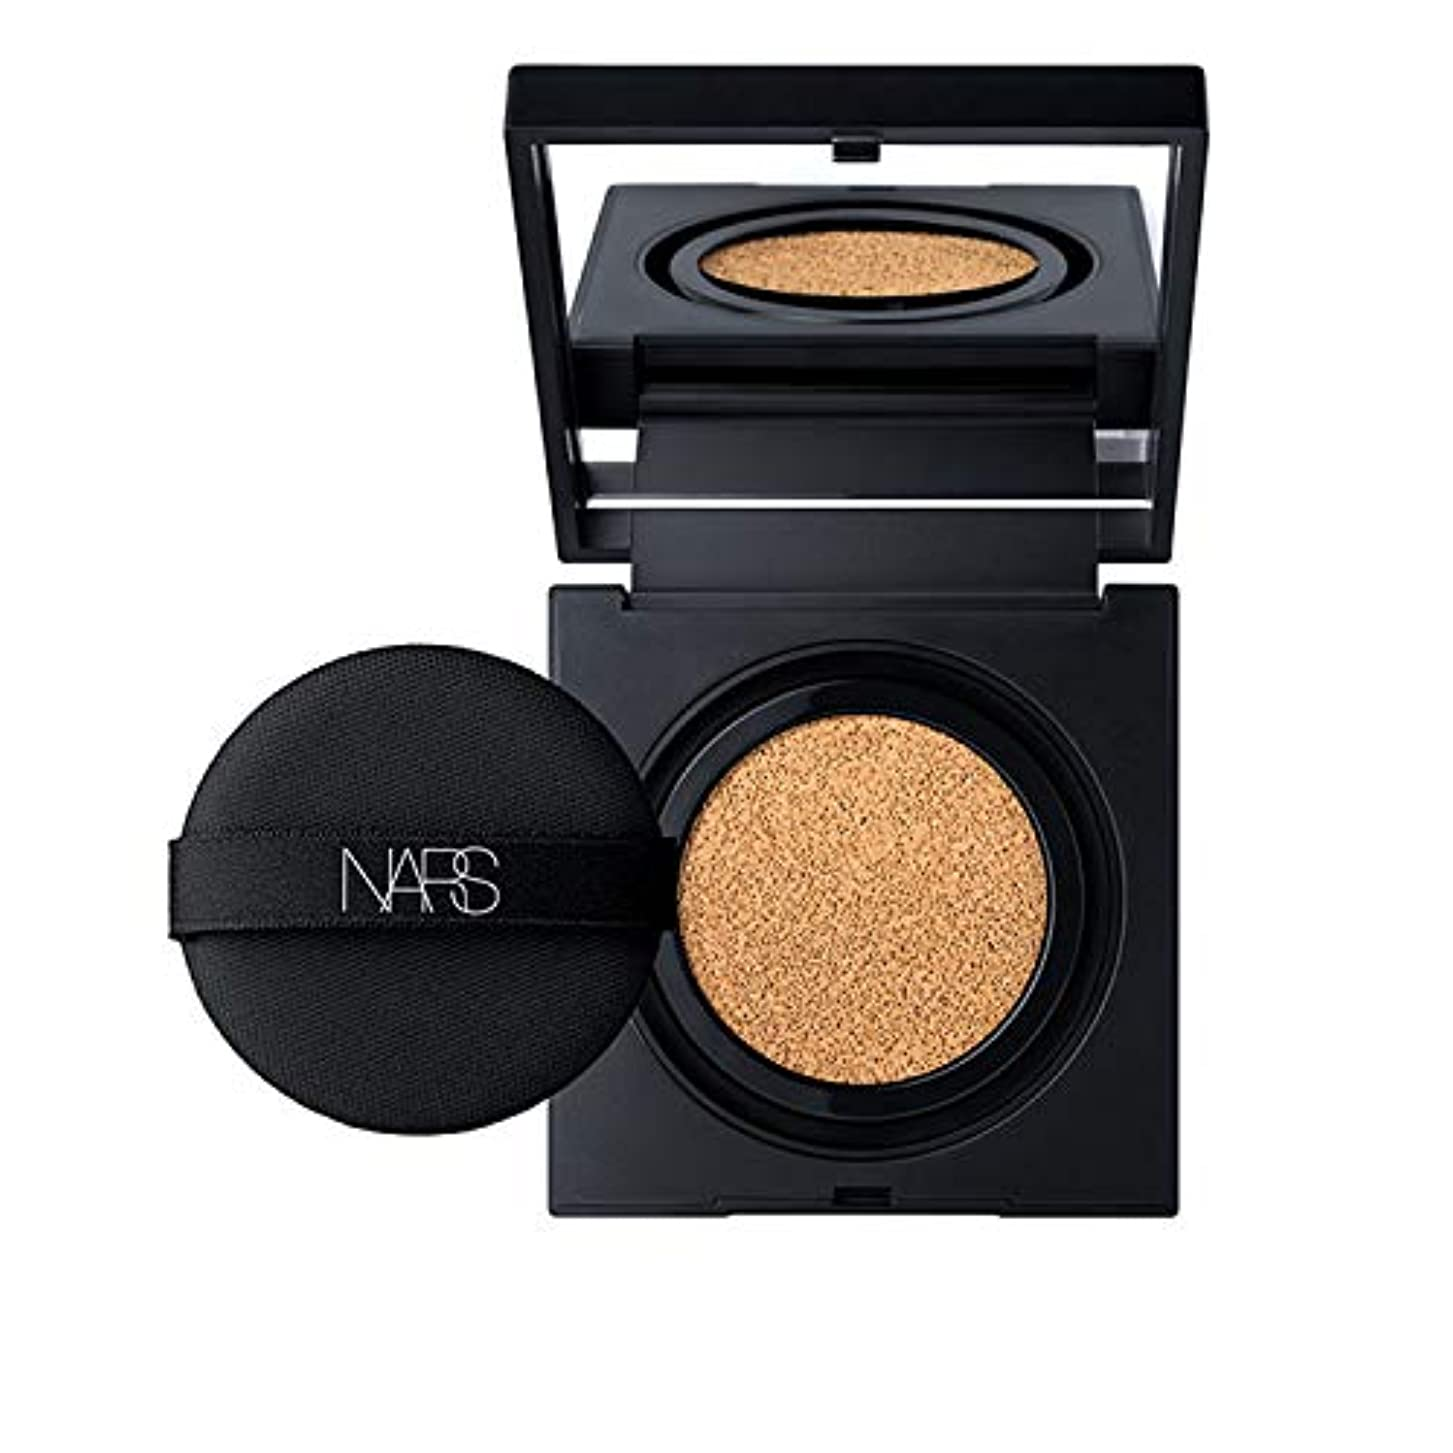 うがいアスリート彼はNars(ナーズ) Natural Radiant Longwear Cushion Foundation 12g # Deaubville